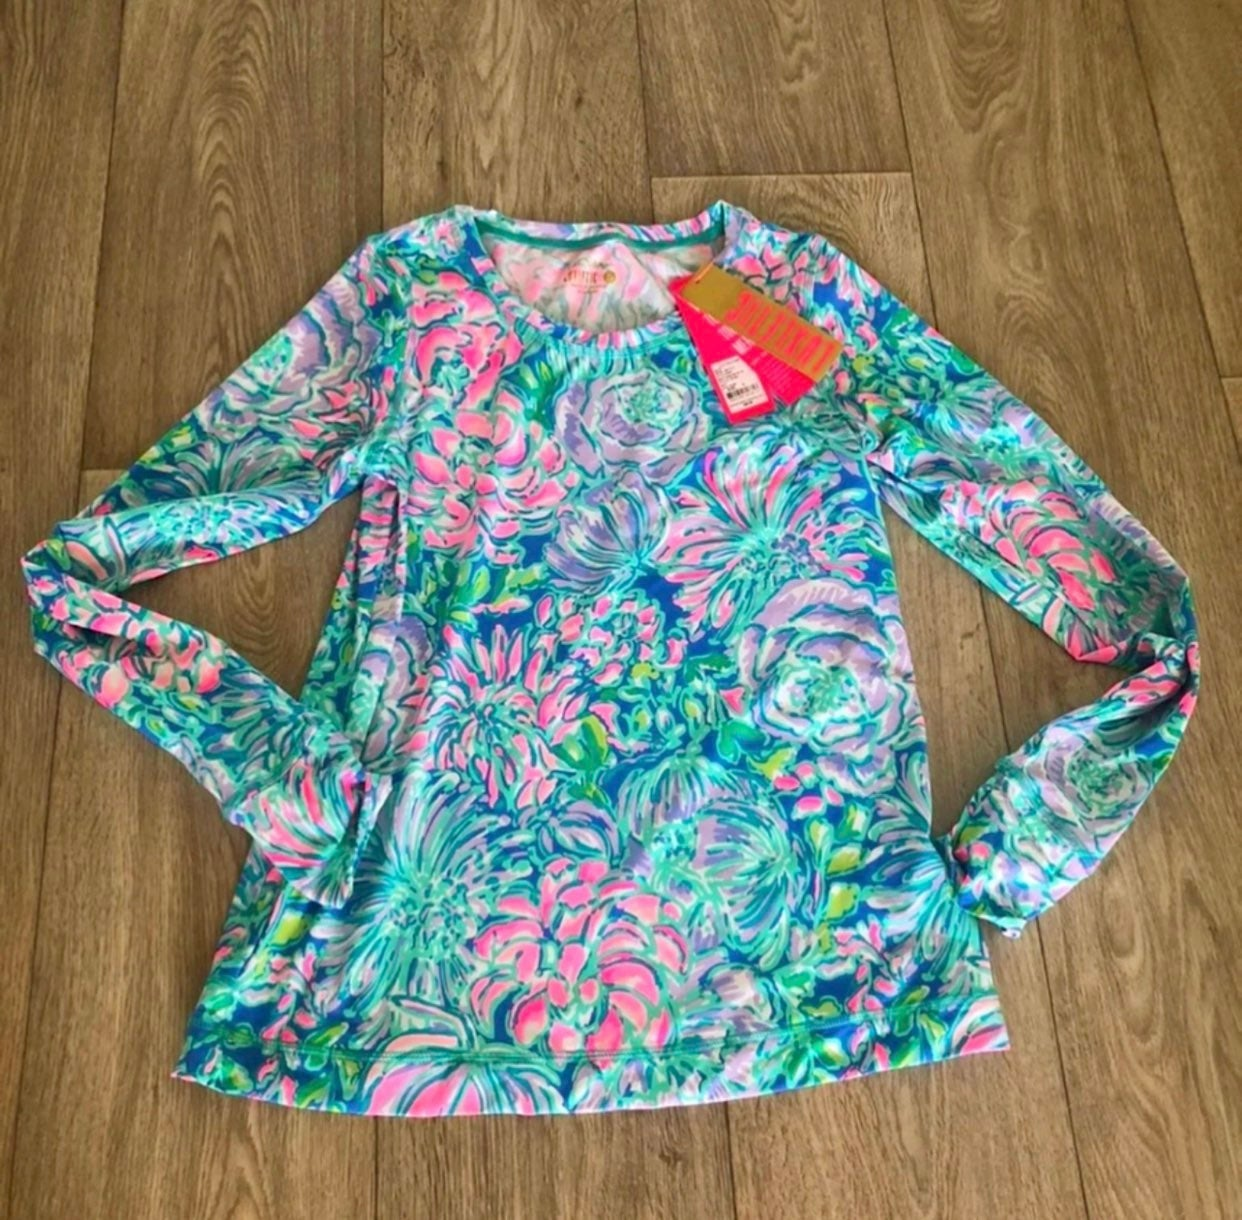 Lilly Pulitzer luxletic small